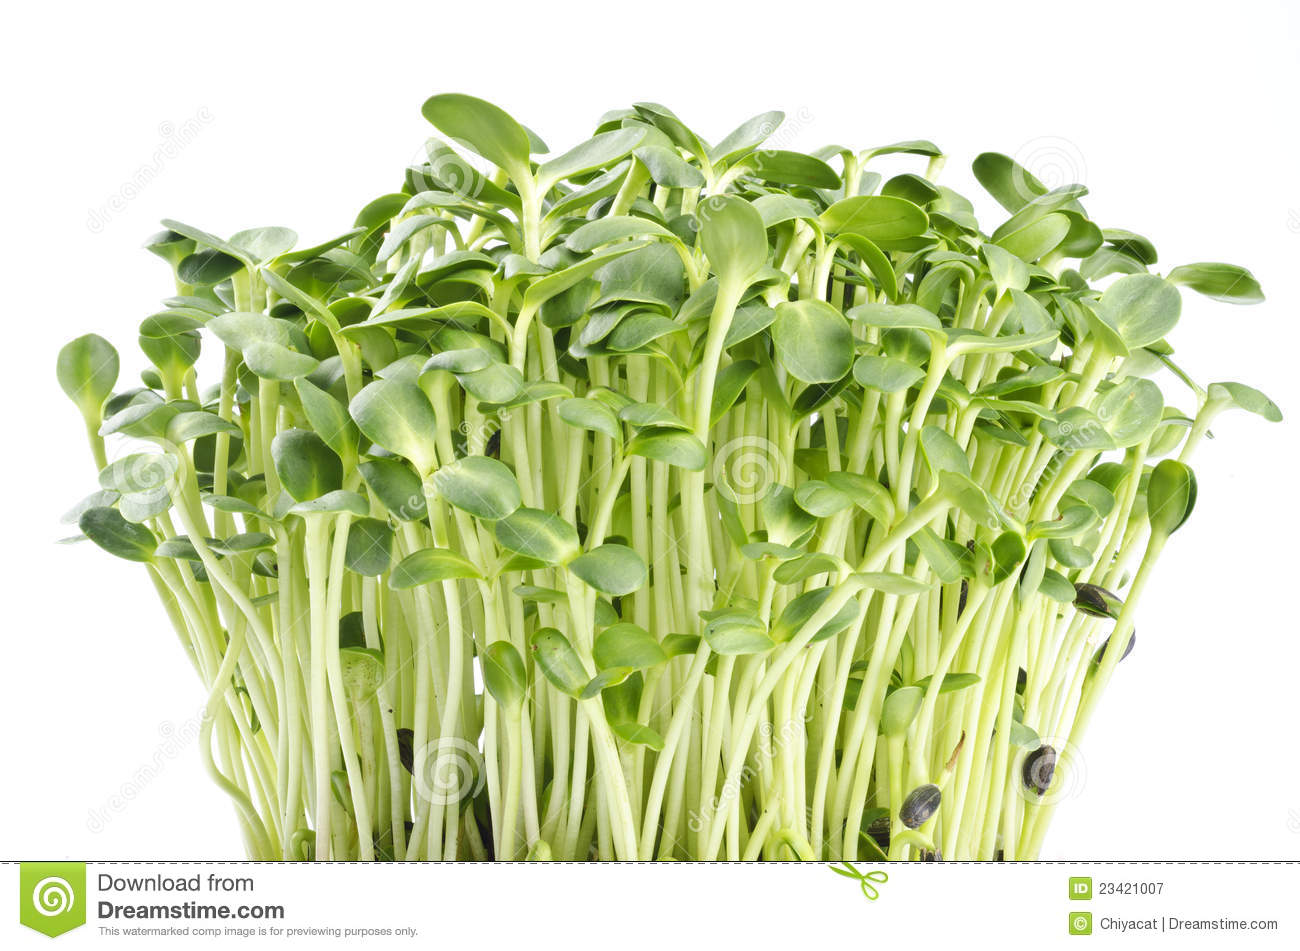 5 Health Benefits of Eating Sunflower Sprouts (Plus a Juice Recipe ...